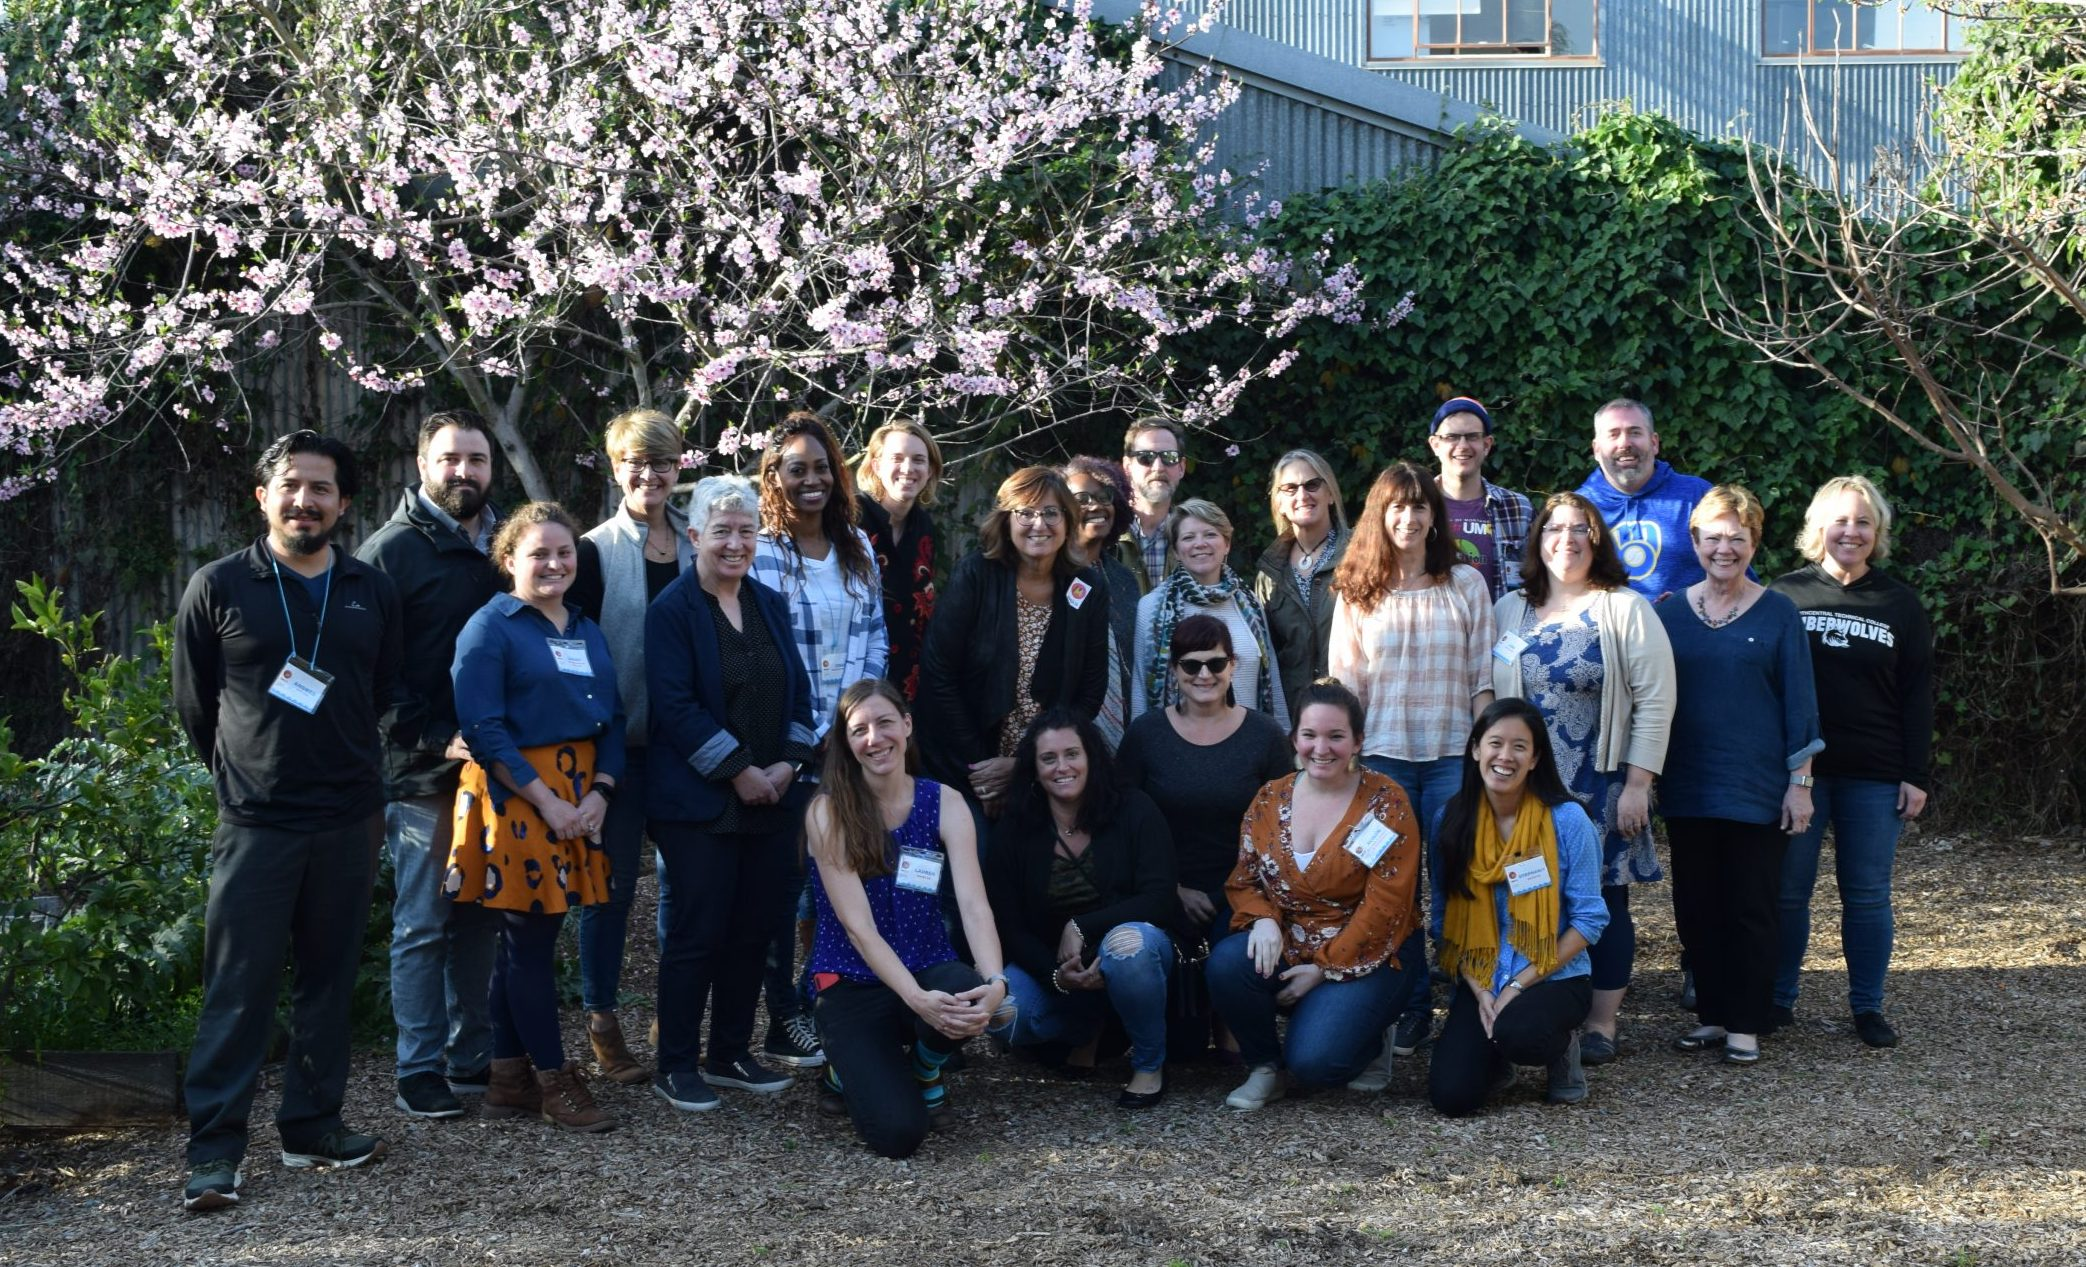 A group shot of Cohort 4 Hub representatives. They are standing outside in the back yard of the Maker Ed Community Studio